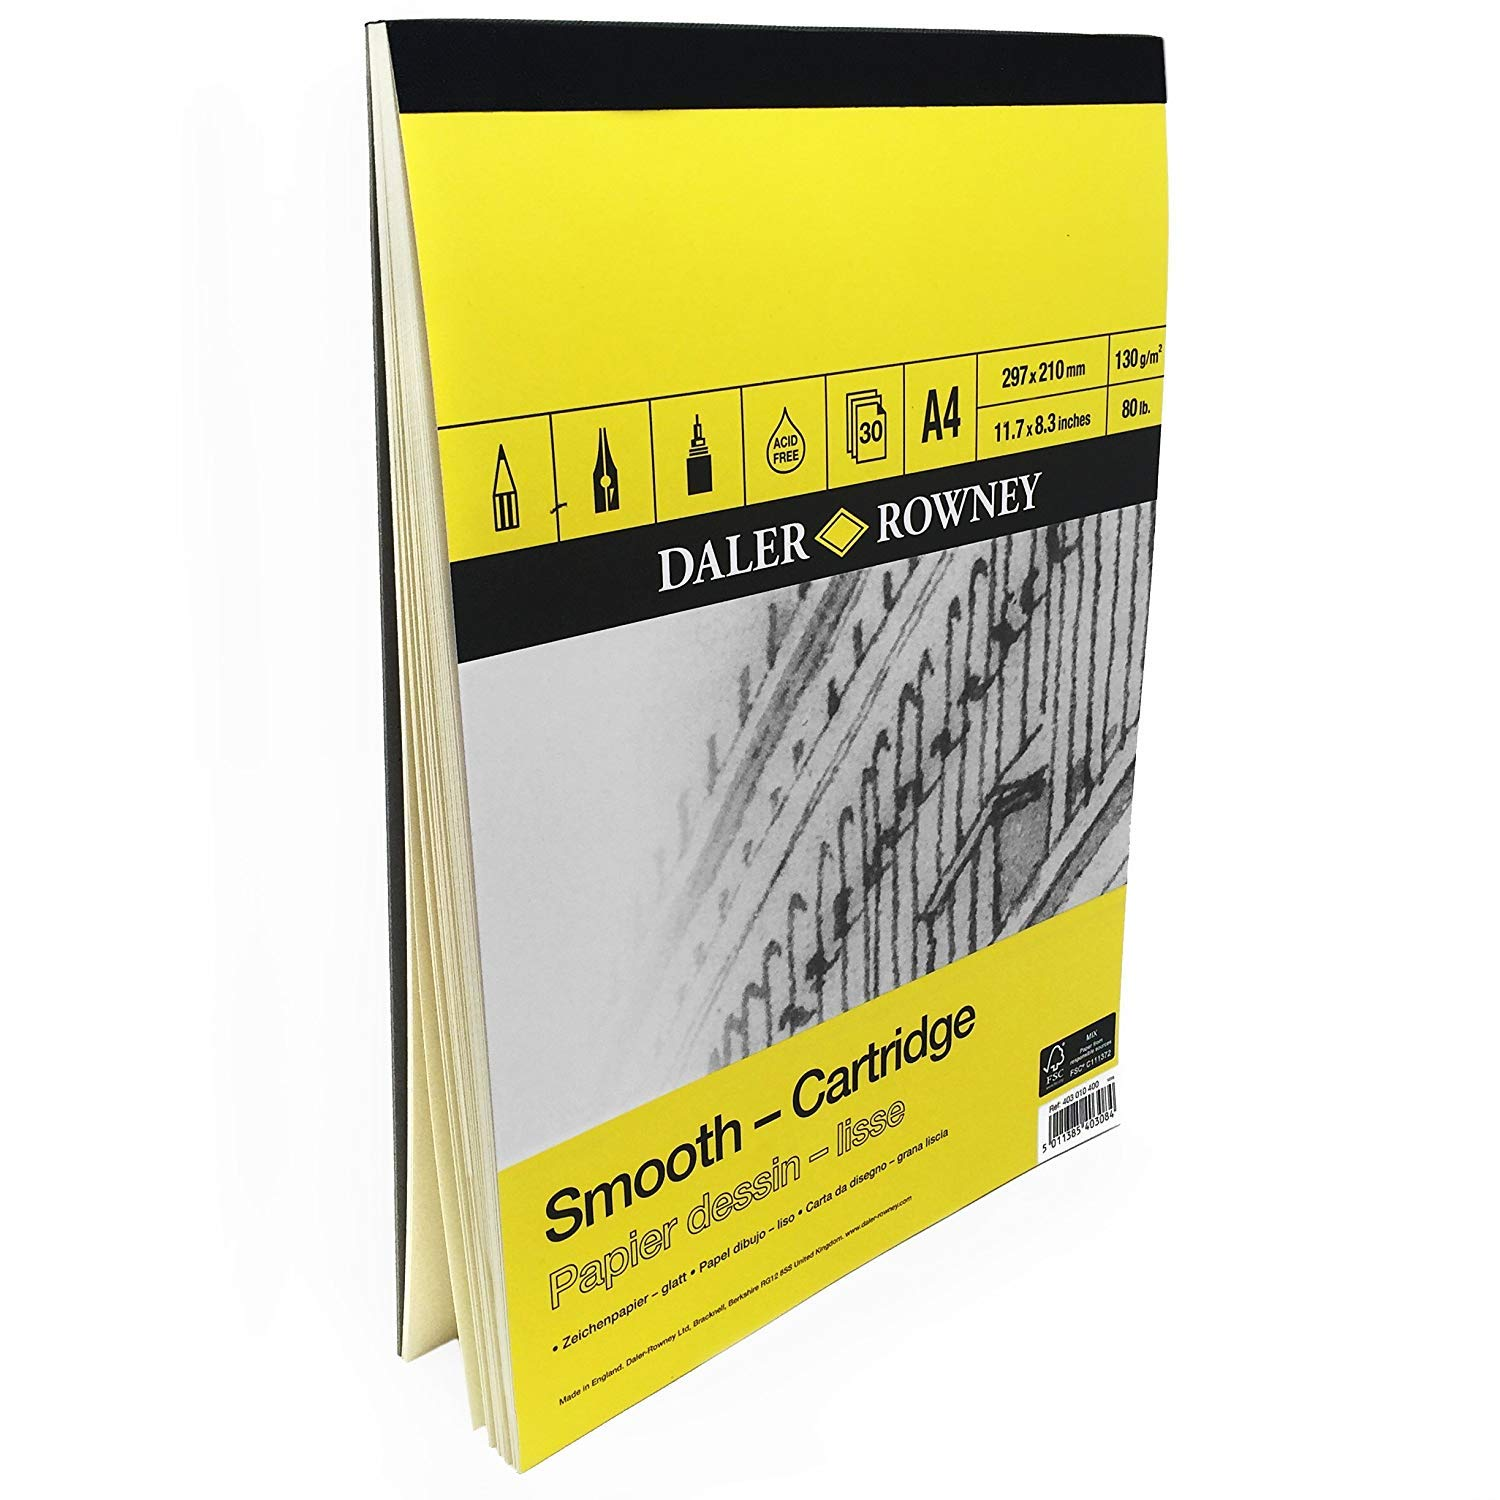 Daler Rowney - Smooth Cartridge Sketchbook - 130gsm - 30 Pages - A4 Portrait - Made in England